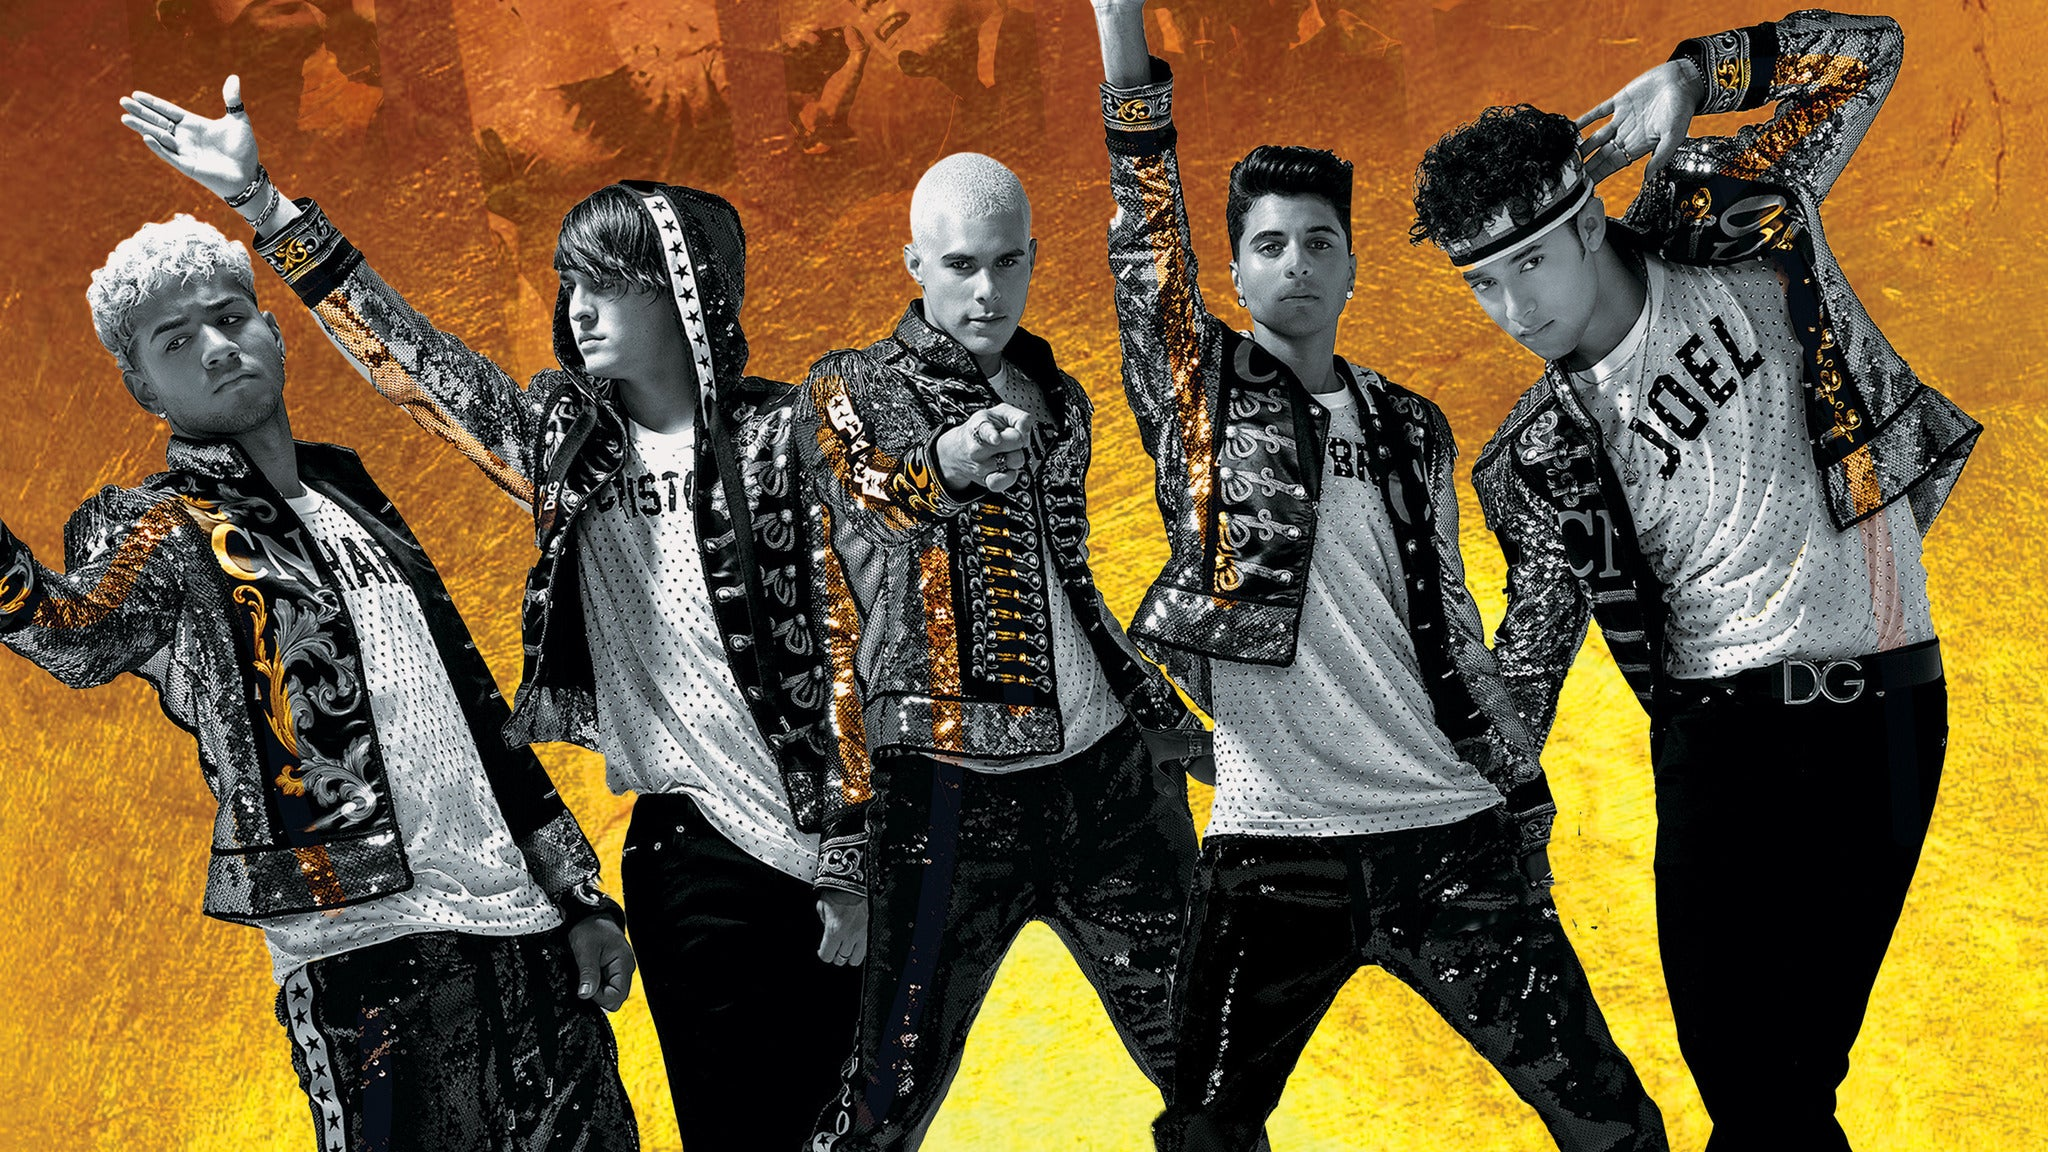 CNCO - Press Start 2020 Tour at AmericanAirlines Arena